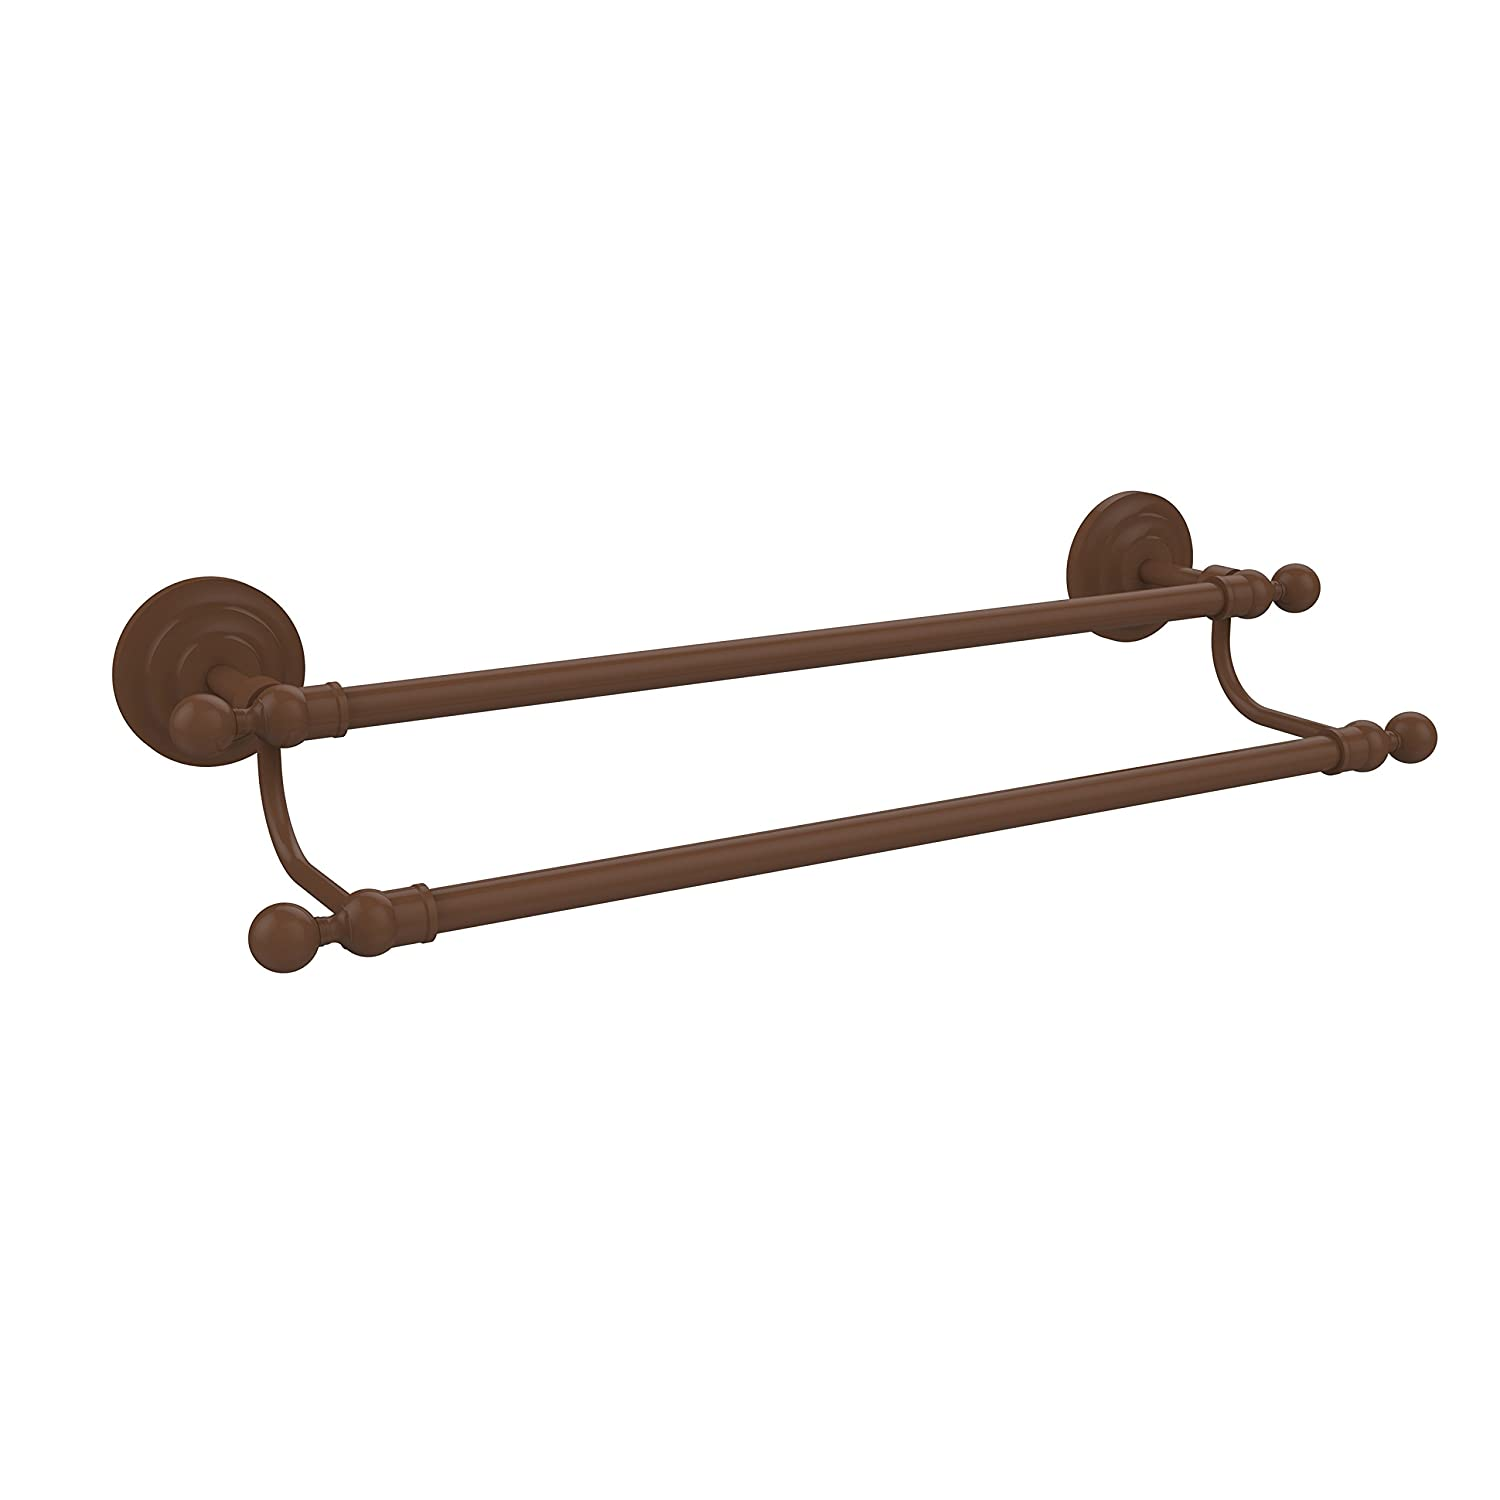 Antique Bronze Allied Brass QN-72 18-ABZ Que New Collection 18 Inch Double Towel Bar, Antique Bronze